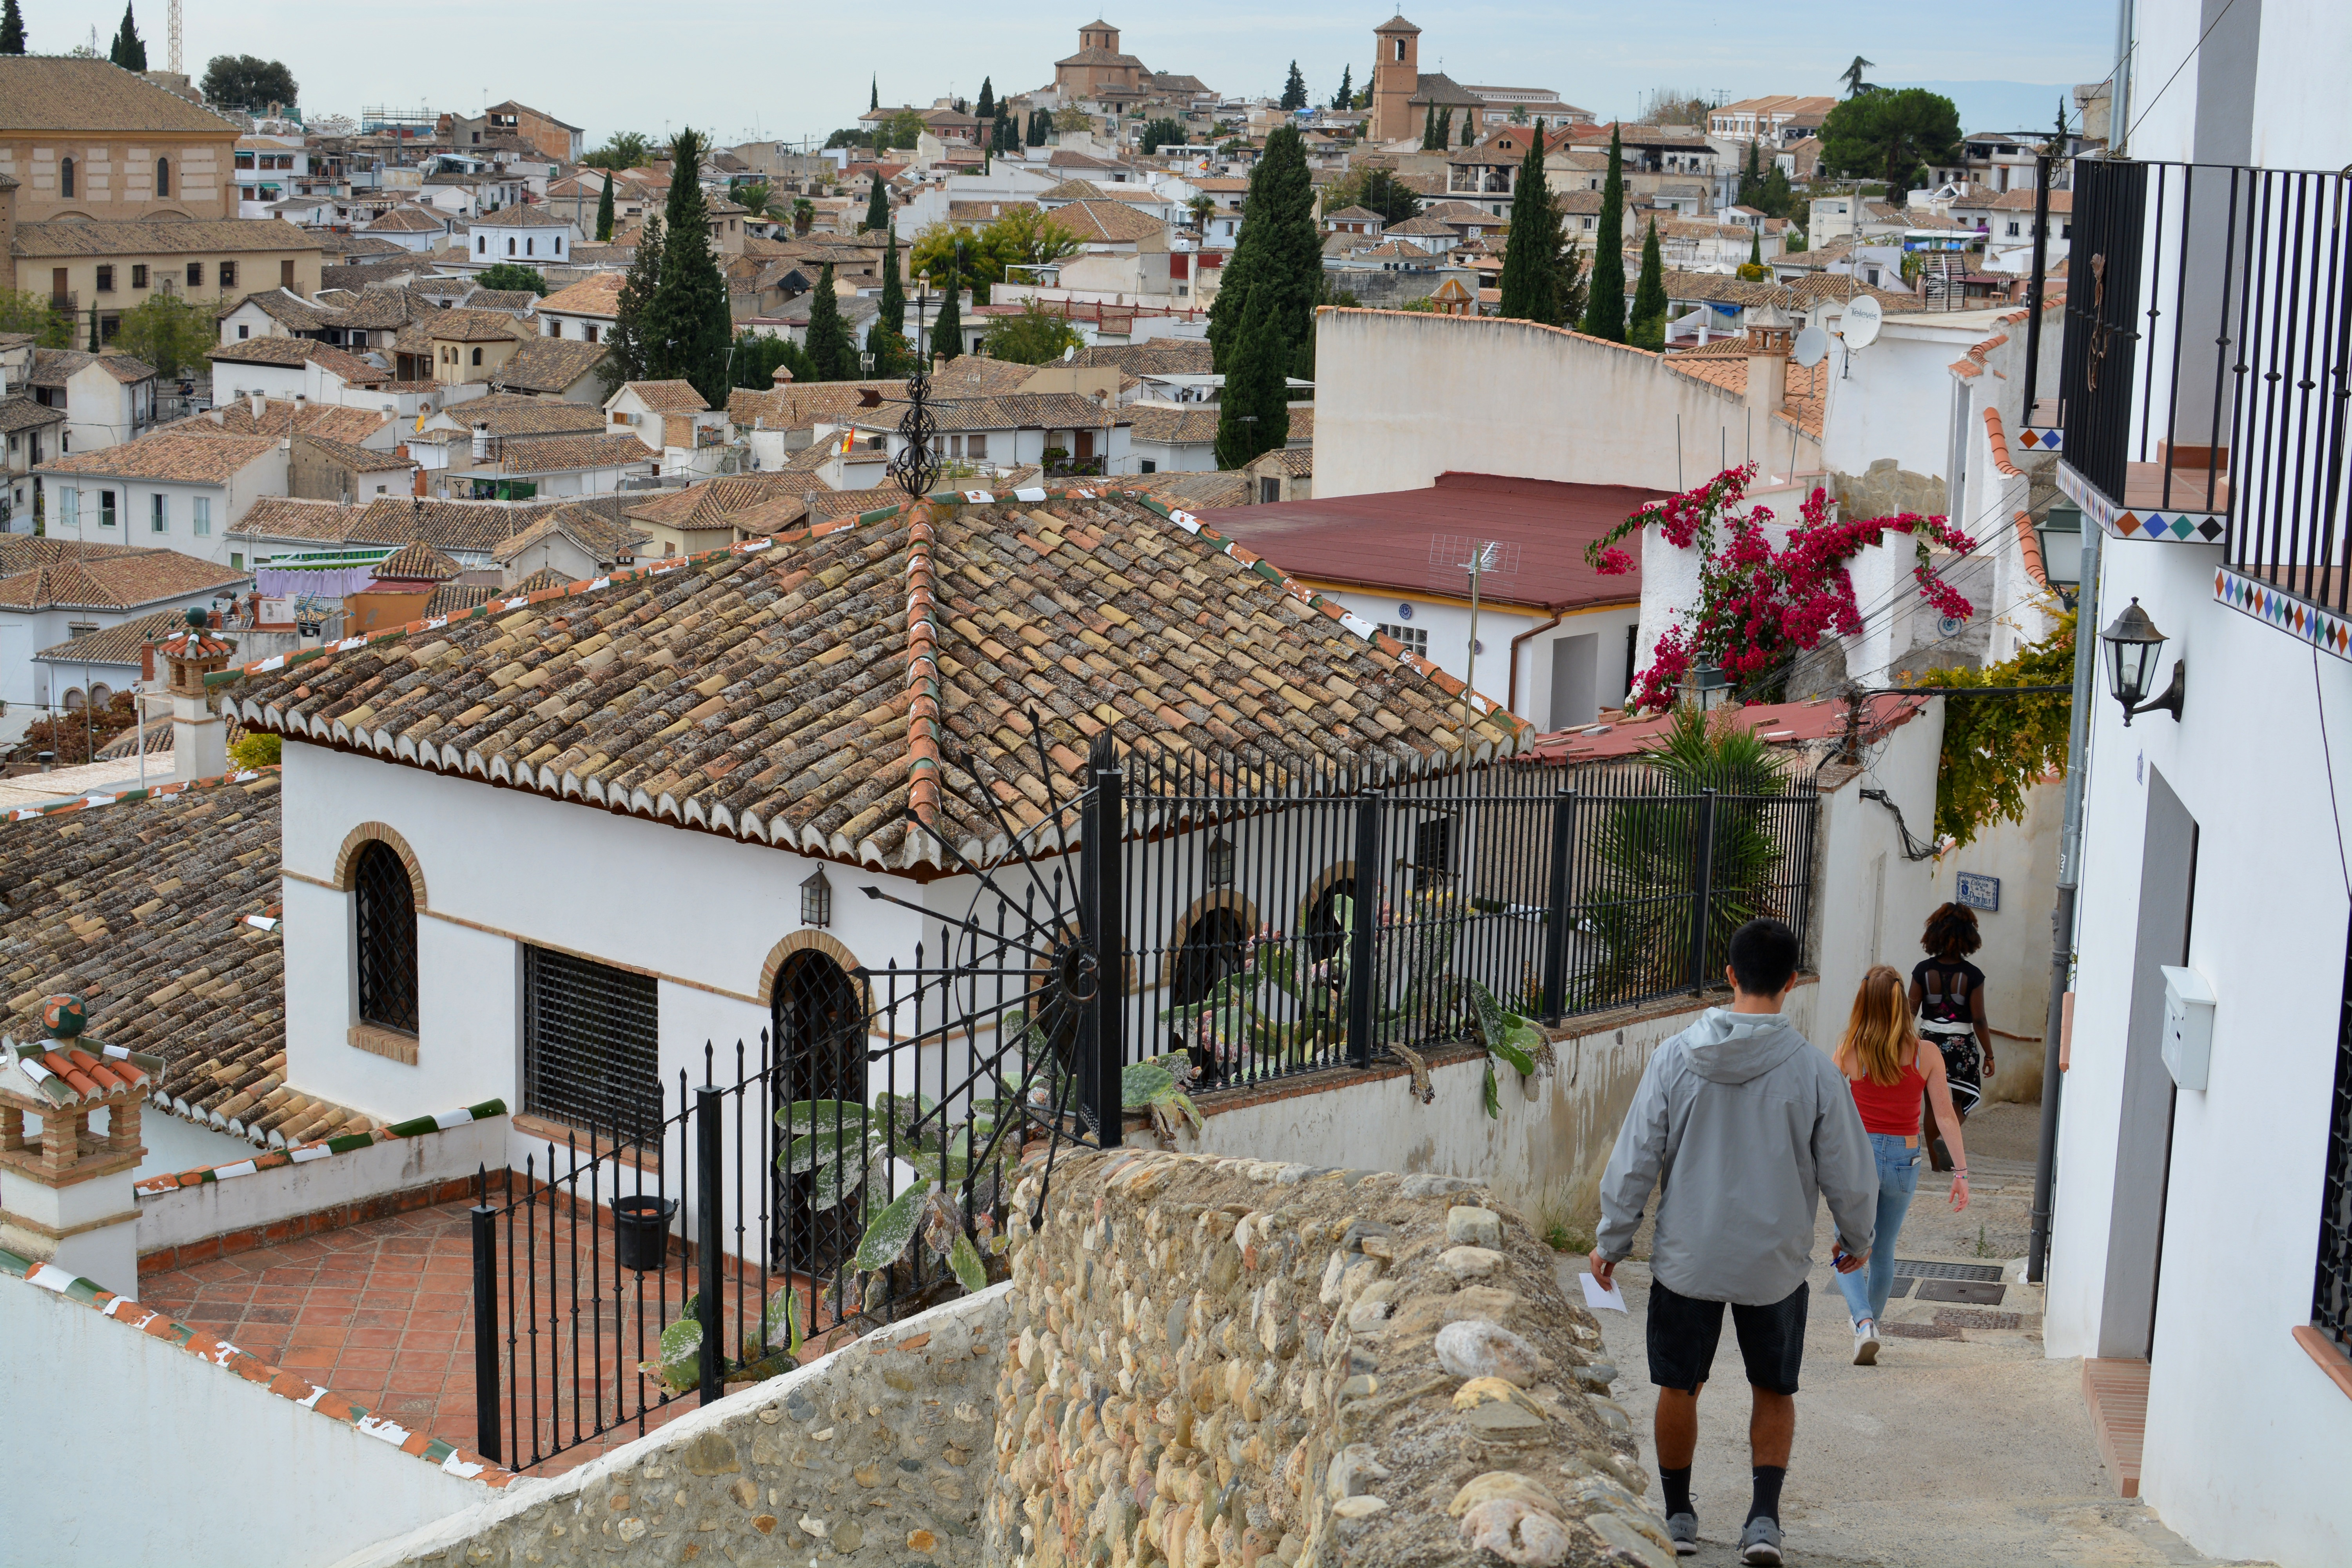 Proctor en Segovia explores the Albaicín neighborhood of Granada